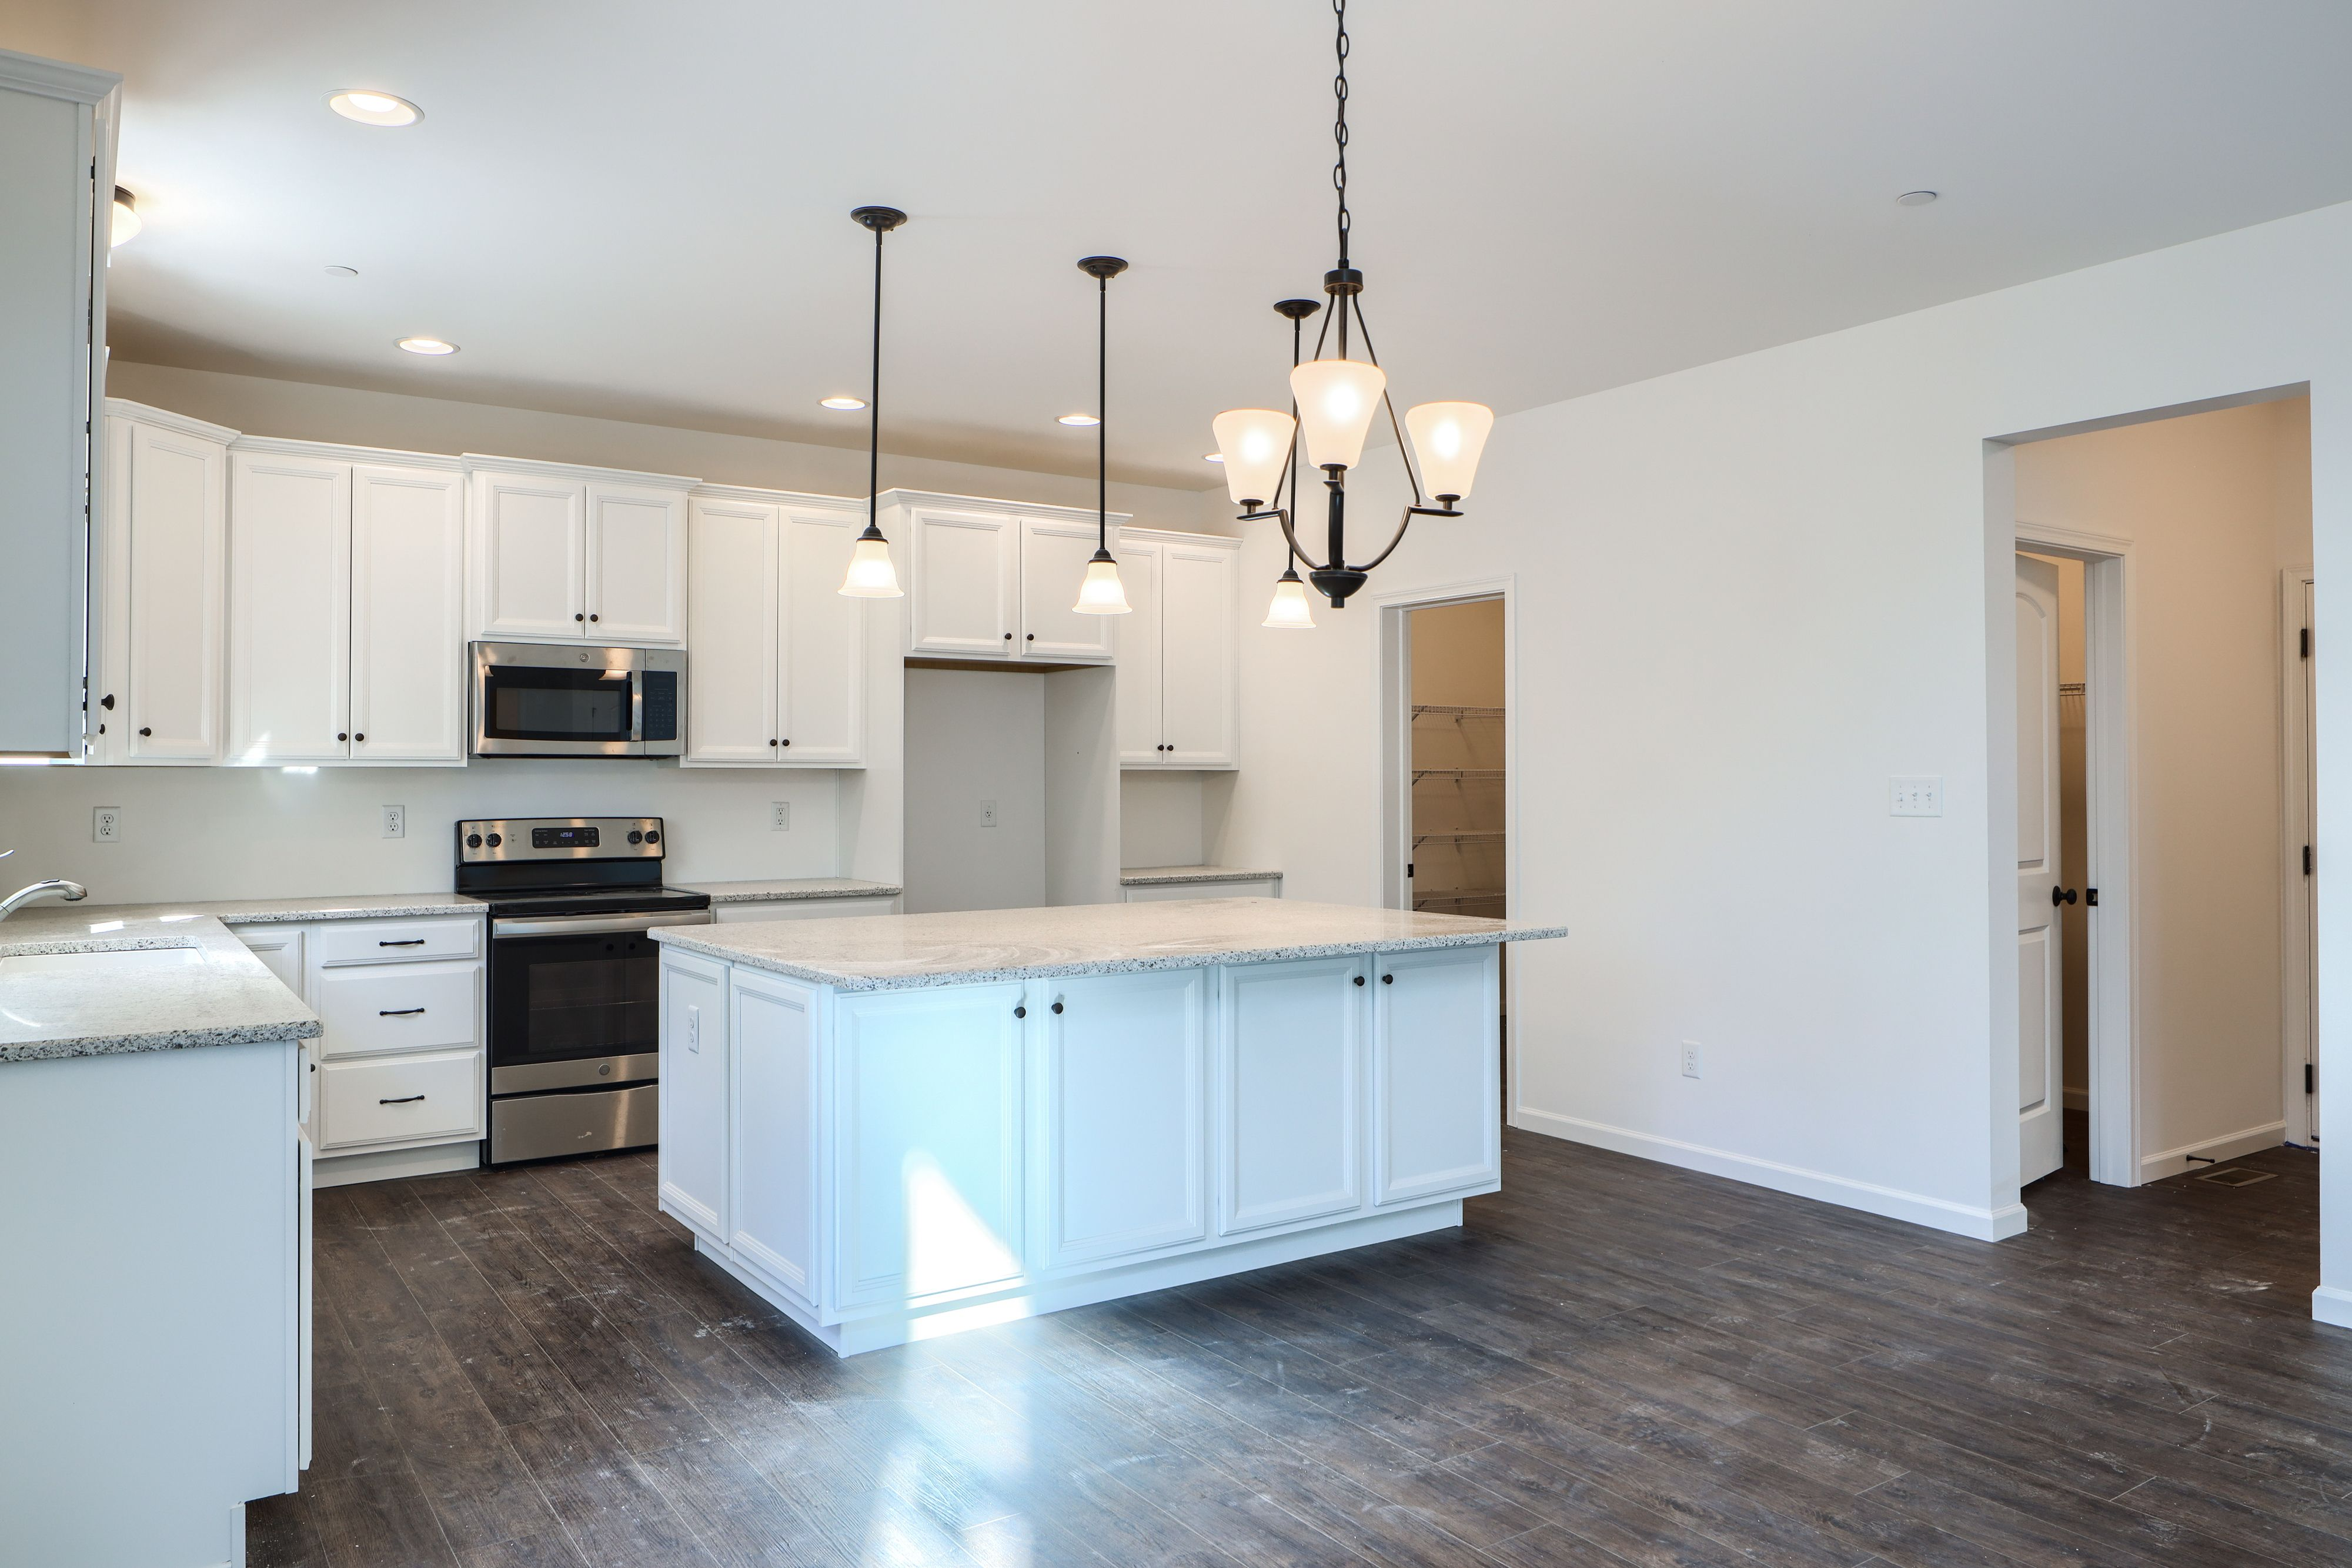 Kitchen featured in the Hawthorne Farmhouse By Keystone Custom Homes in Lancaster, PA